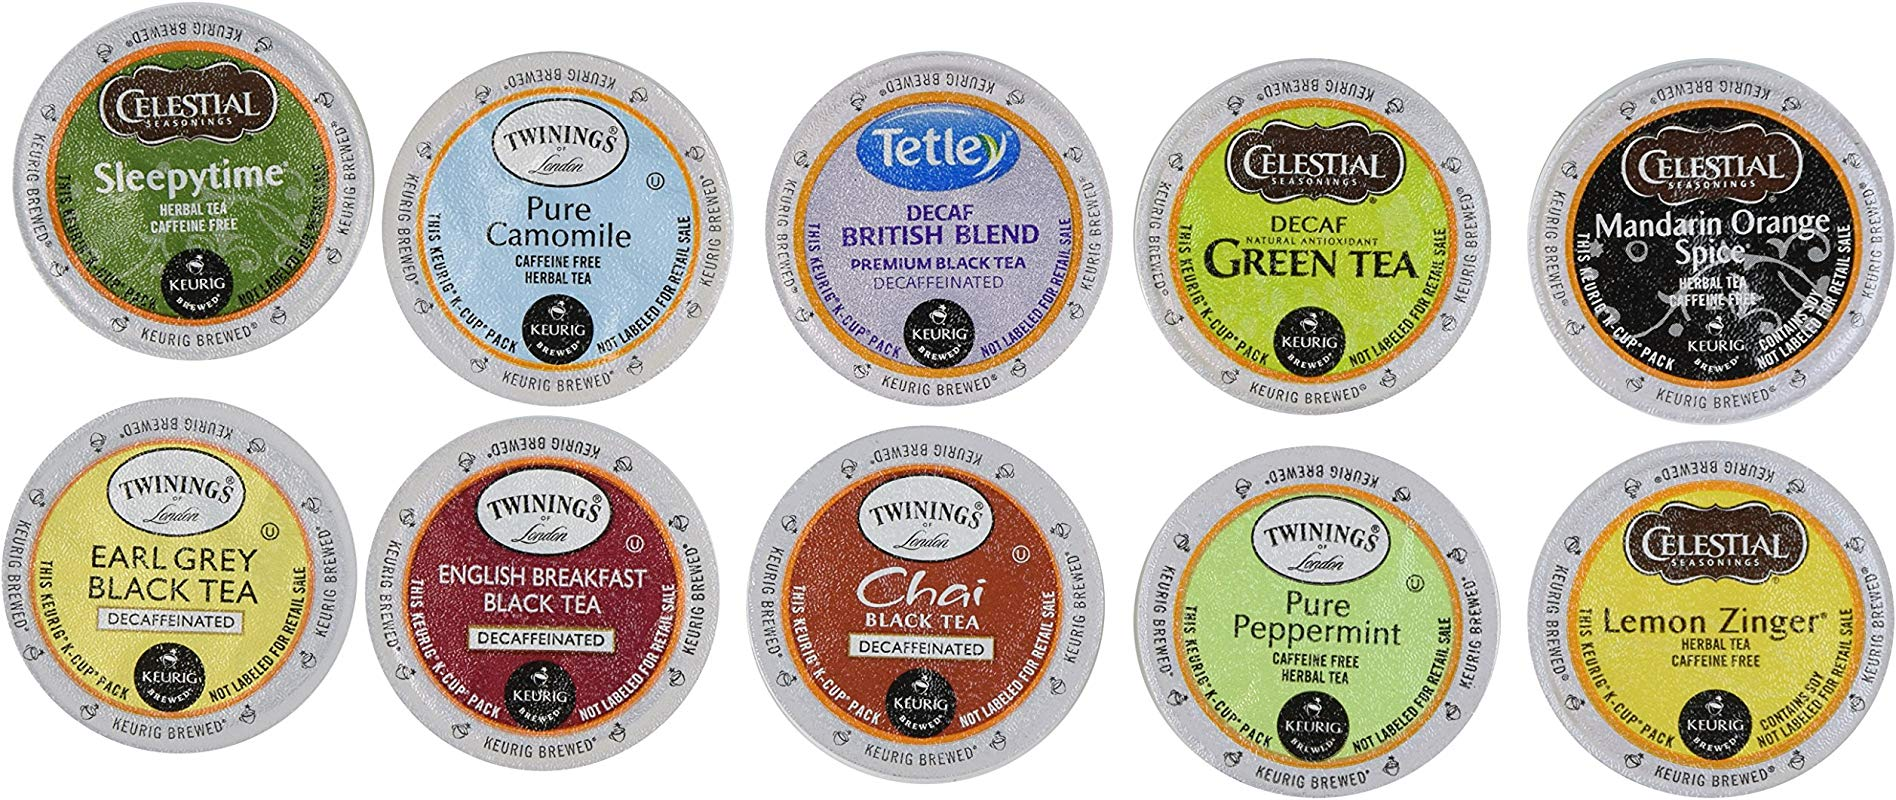 20 Count Variety Decaf Tea K Cup For Keurig Brewers From Celestials Twinnings 10 Flavors